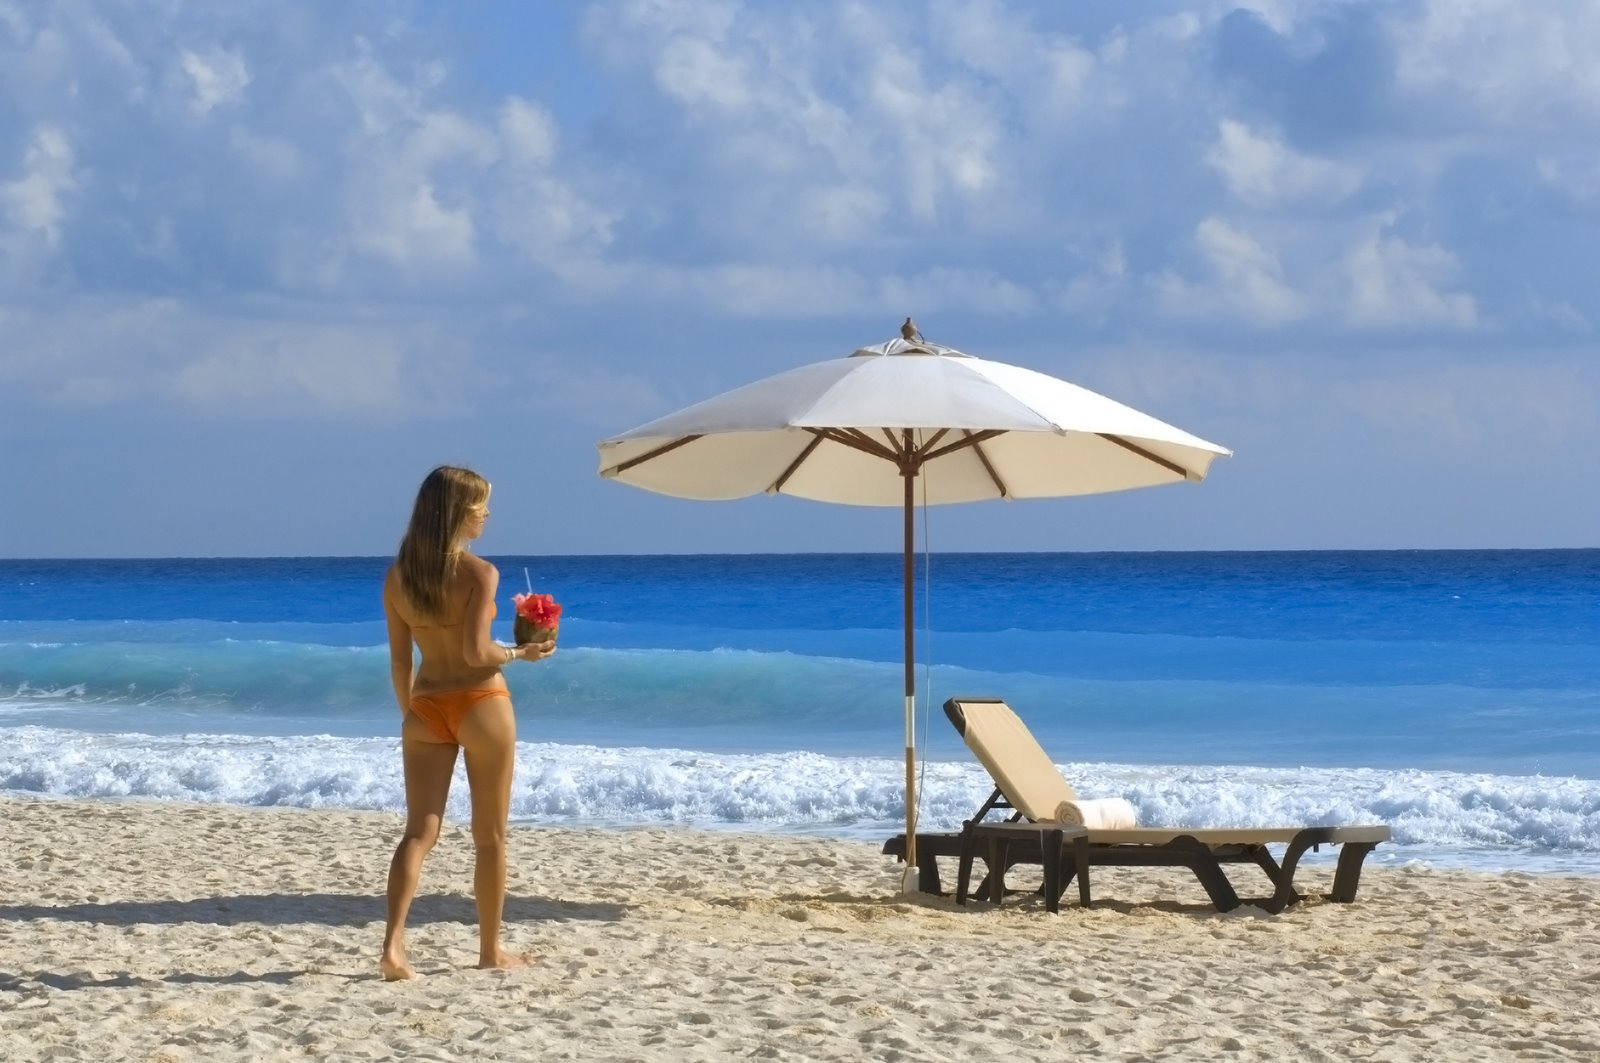 Exotic Vacations for Singles: Vacationing in Mexico